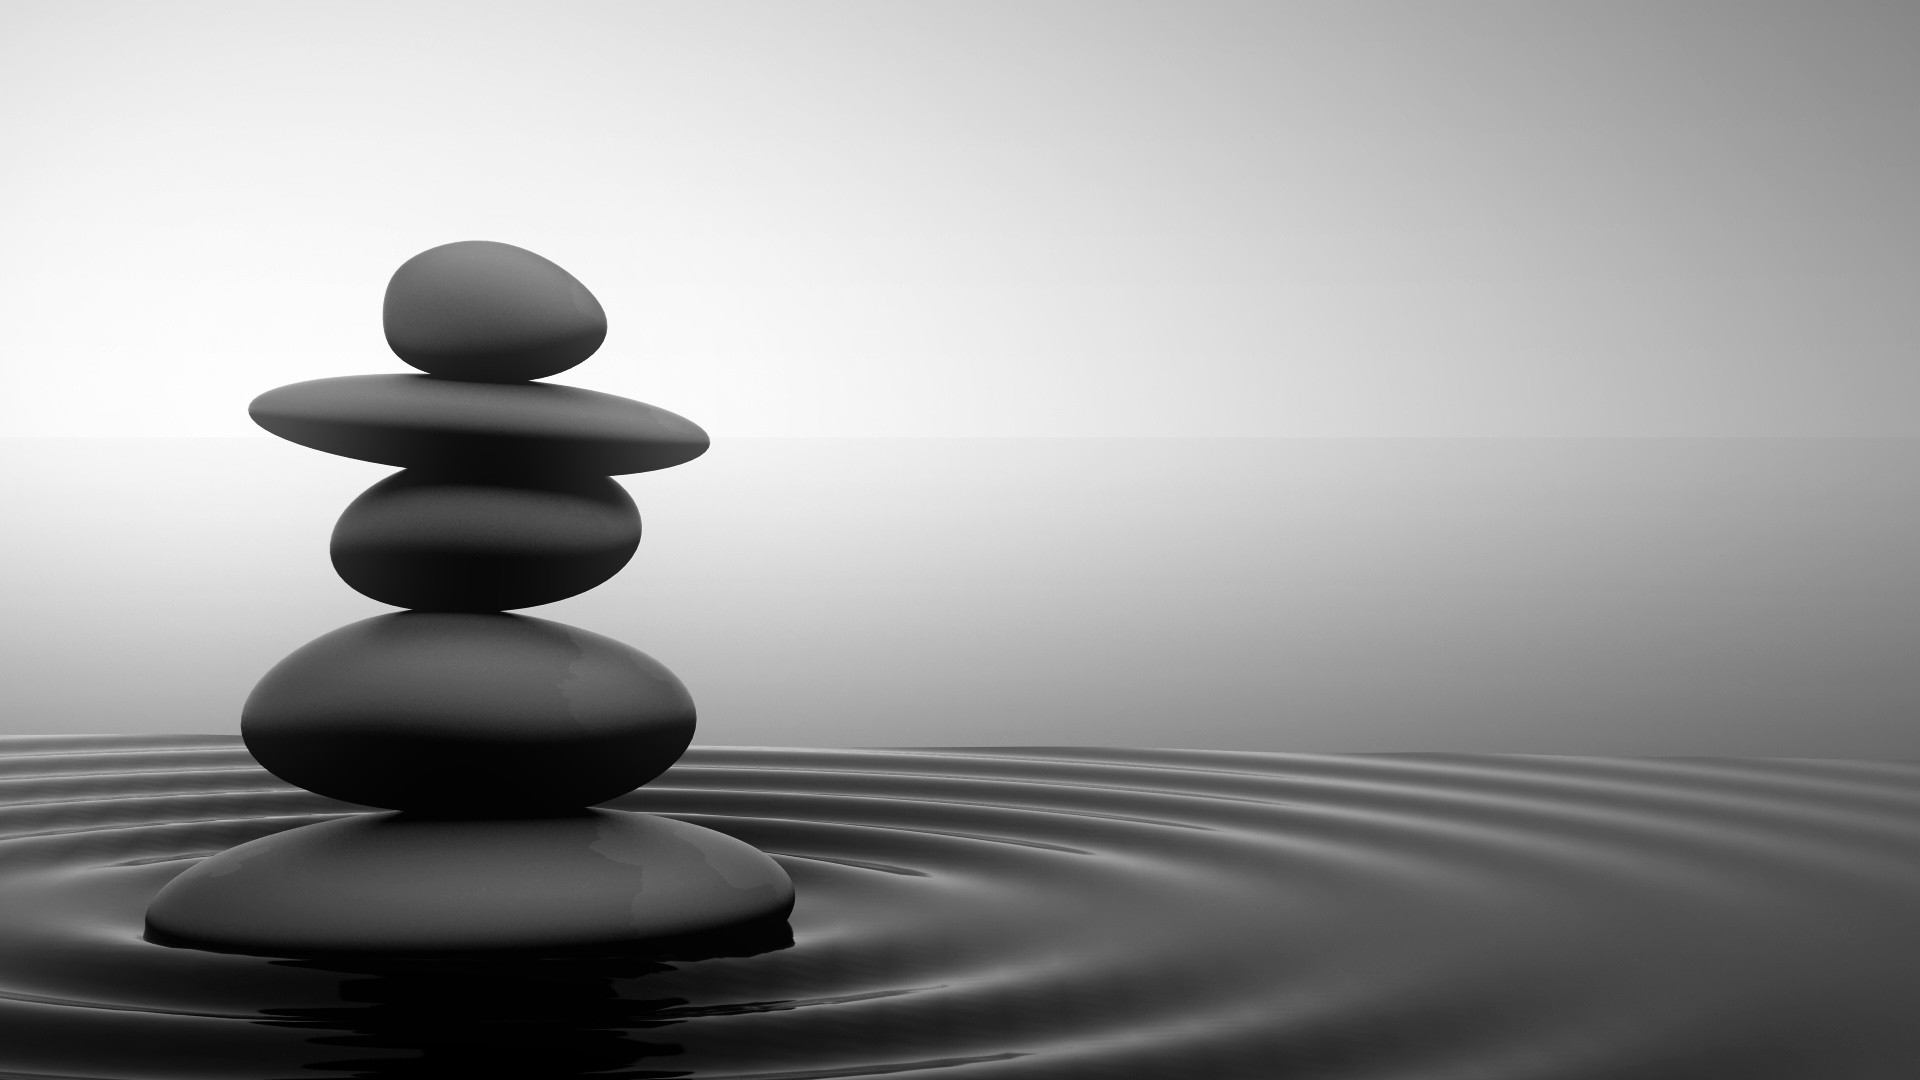 Zen Wallpaper 1920x1080: Zen Wallpaper 1920x1080 (68+ Images